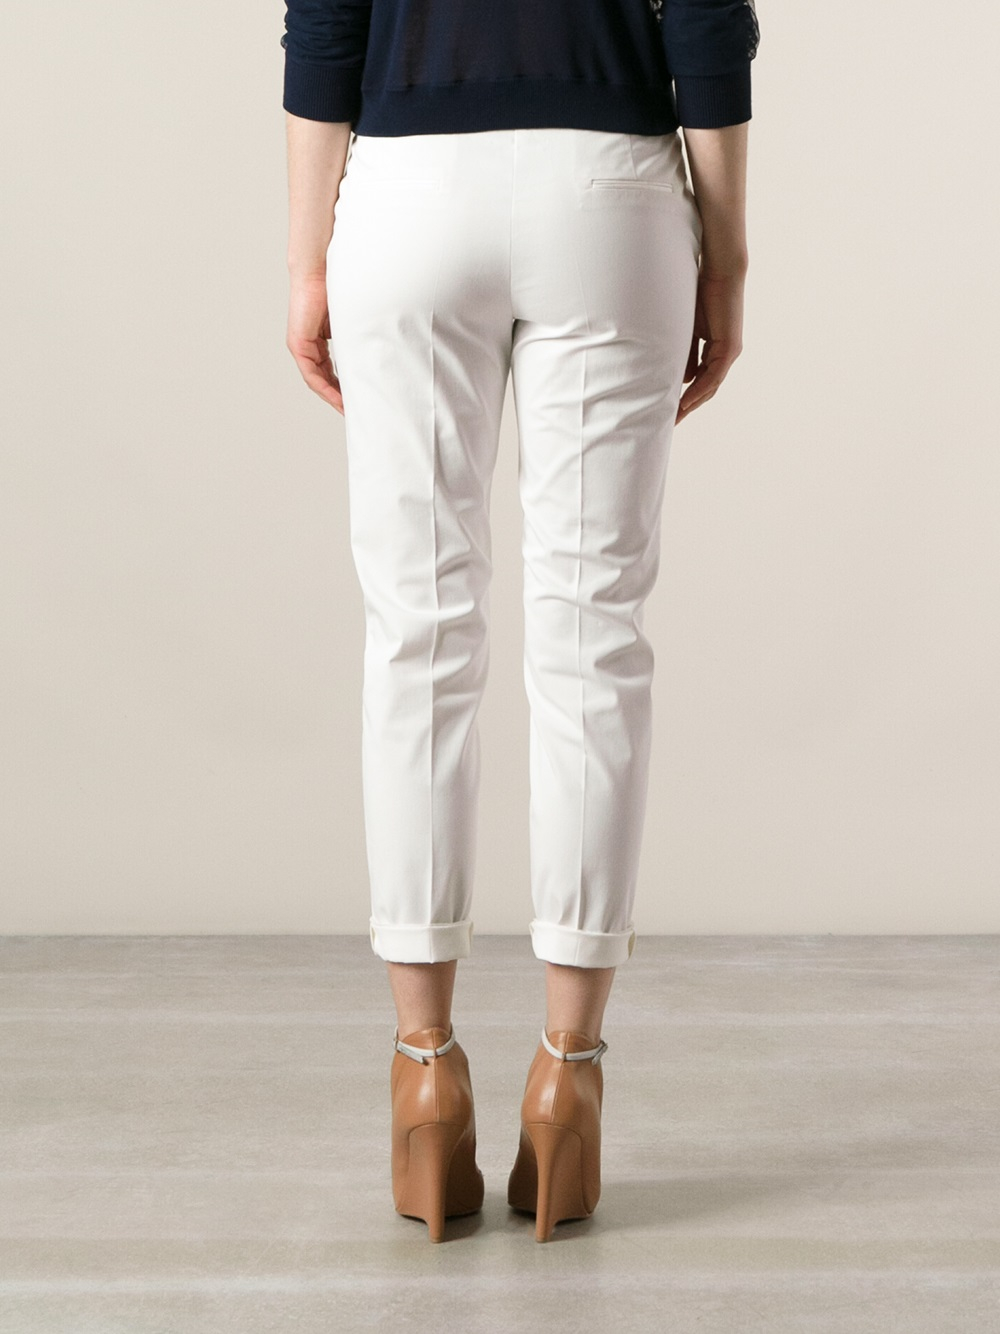 Find great deals on eBay for mens slim fit white pants. Shop with confidence.